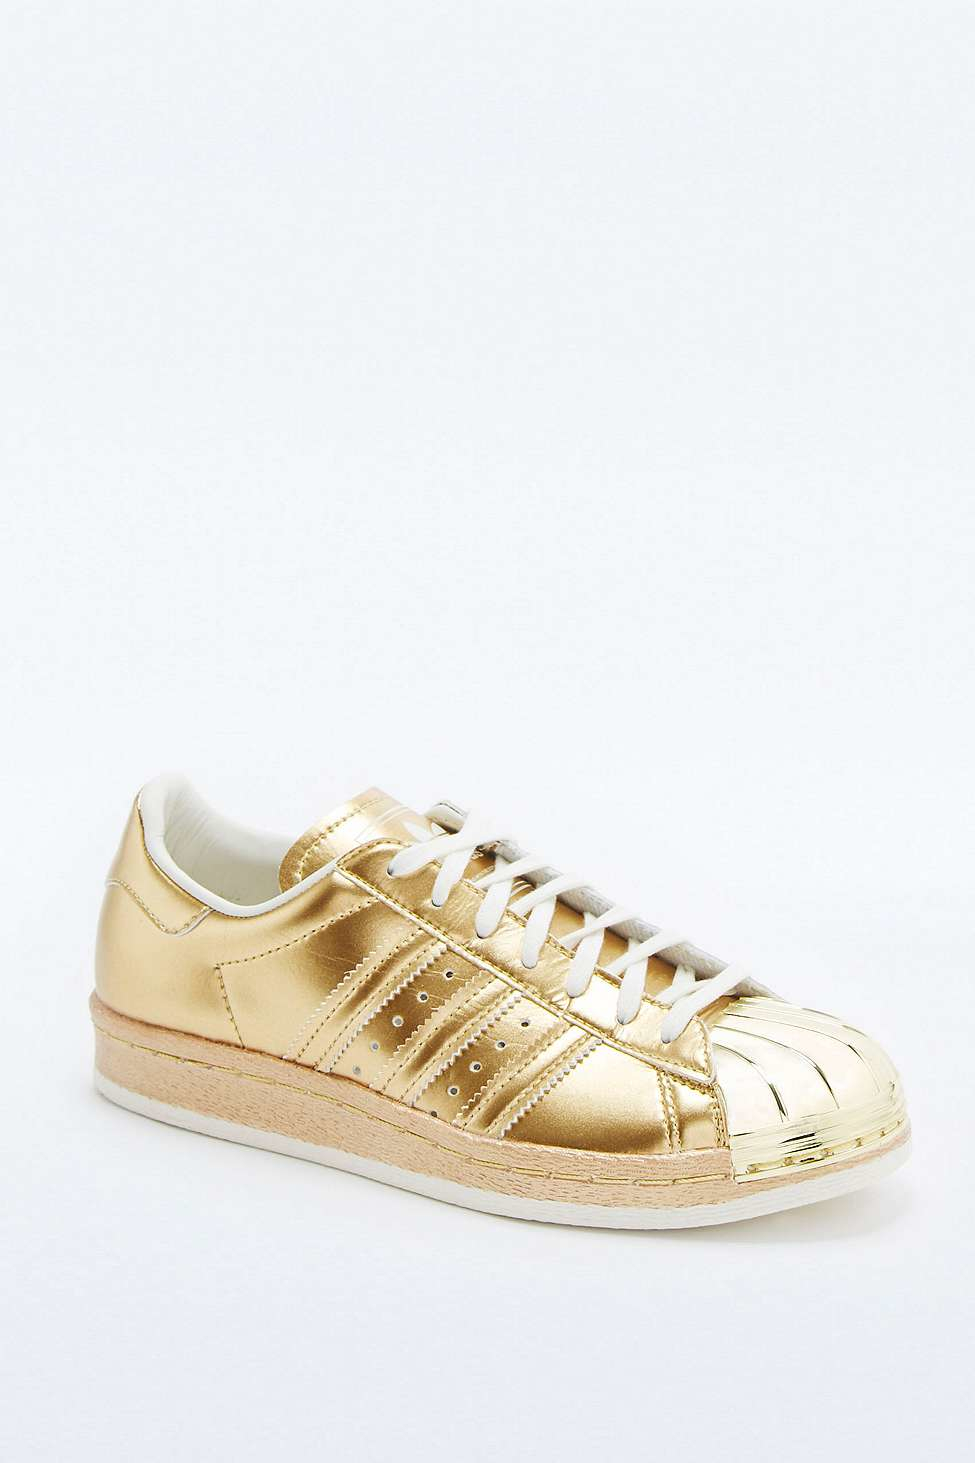 Adidas Originals Superstar 80s Metallic Gold Trainers In Metallic Lyst